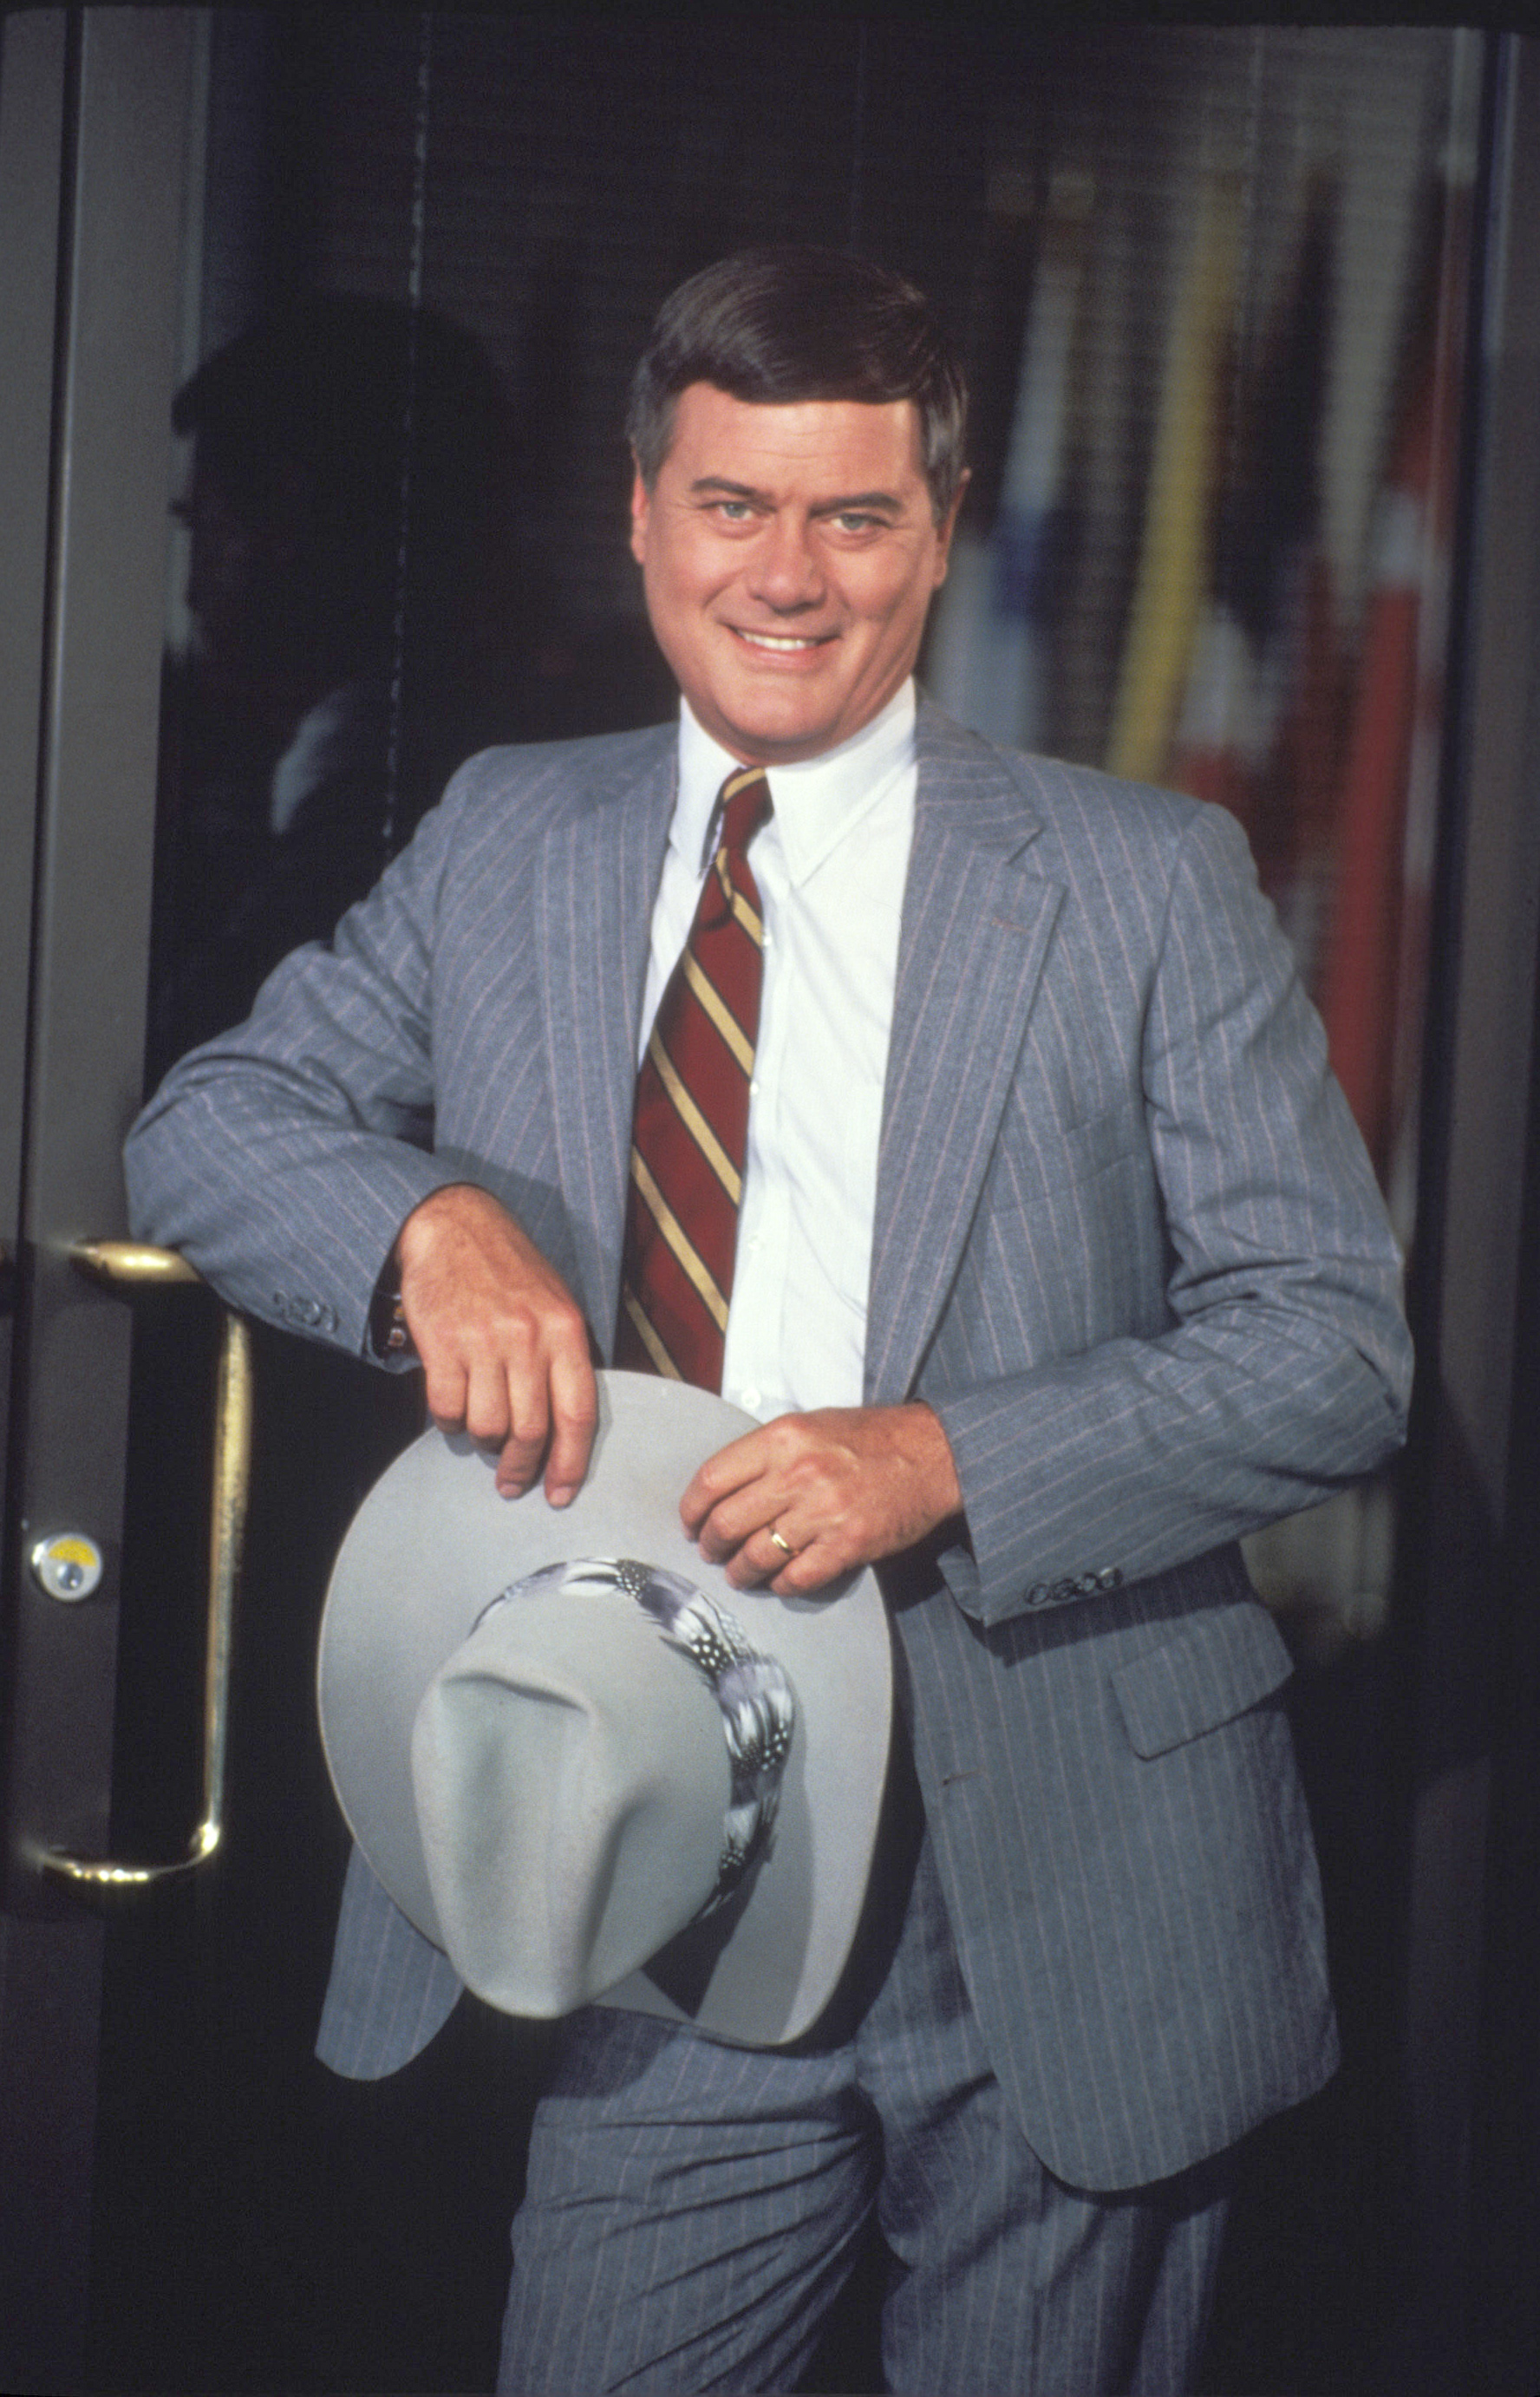 c205a3ff5 The moment Dallas fans found out who shot JR Ewing - NZ Herald